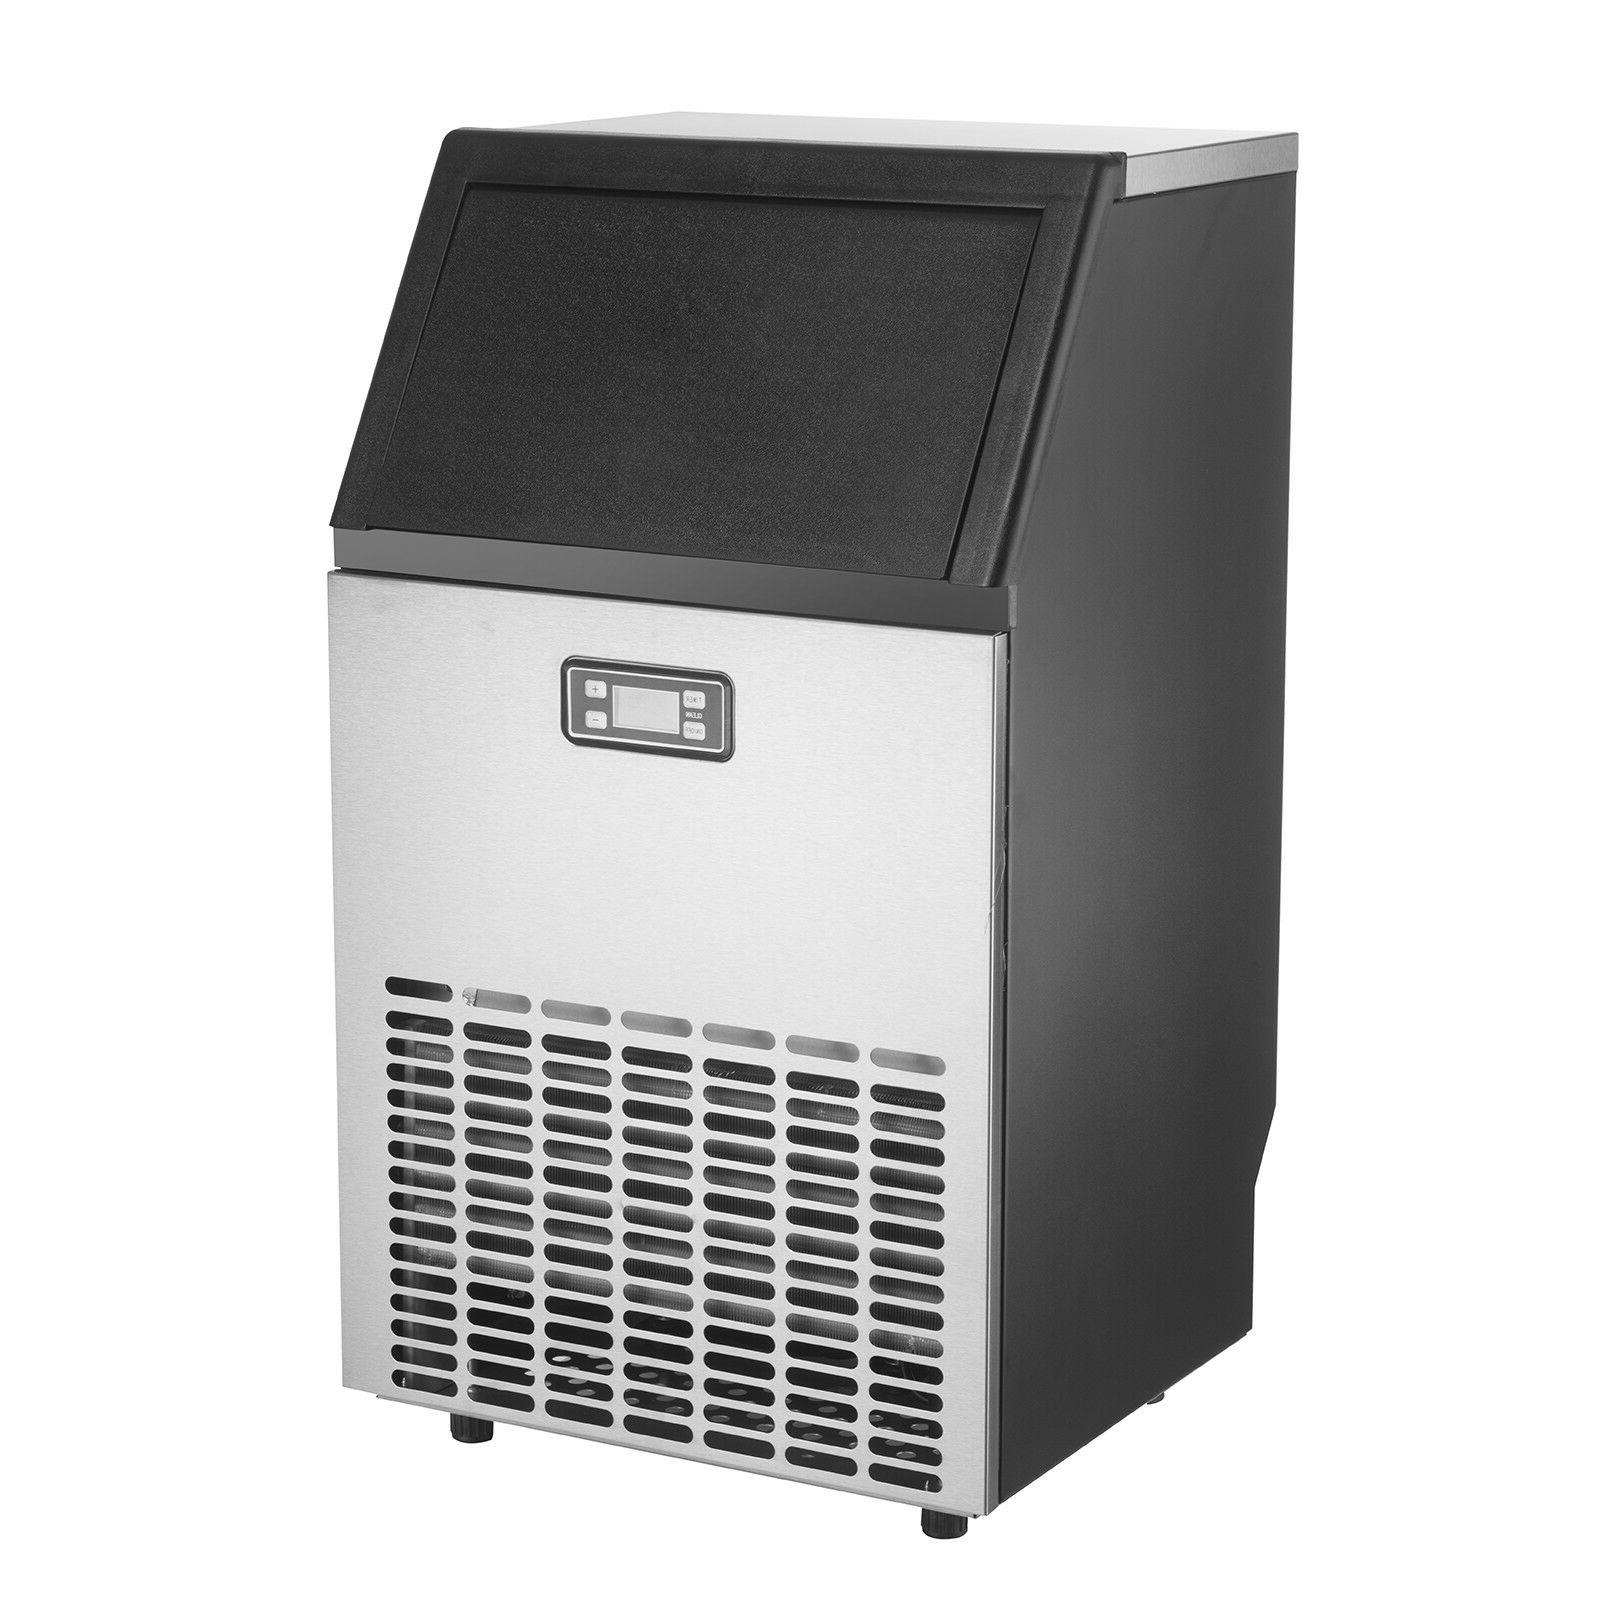 Commercial Built-in Auto Stainless Machine 100lbs